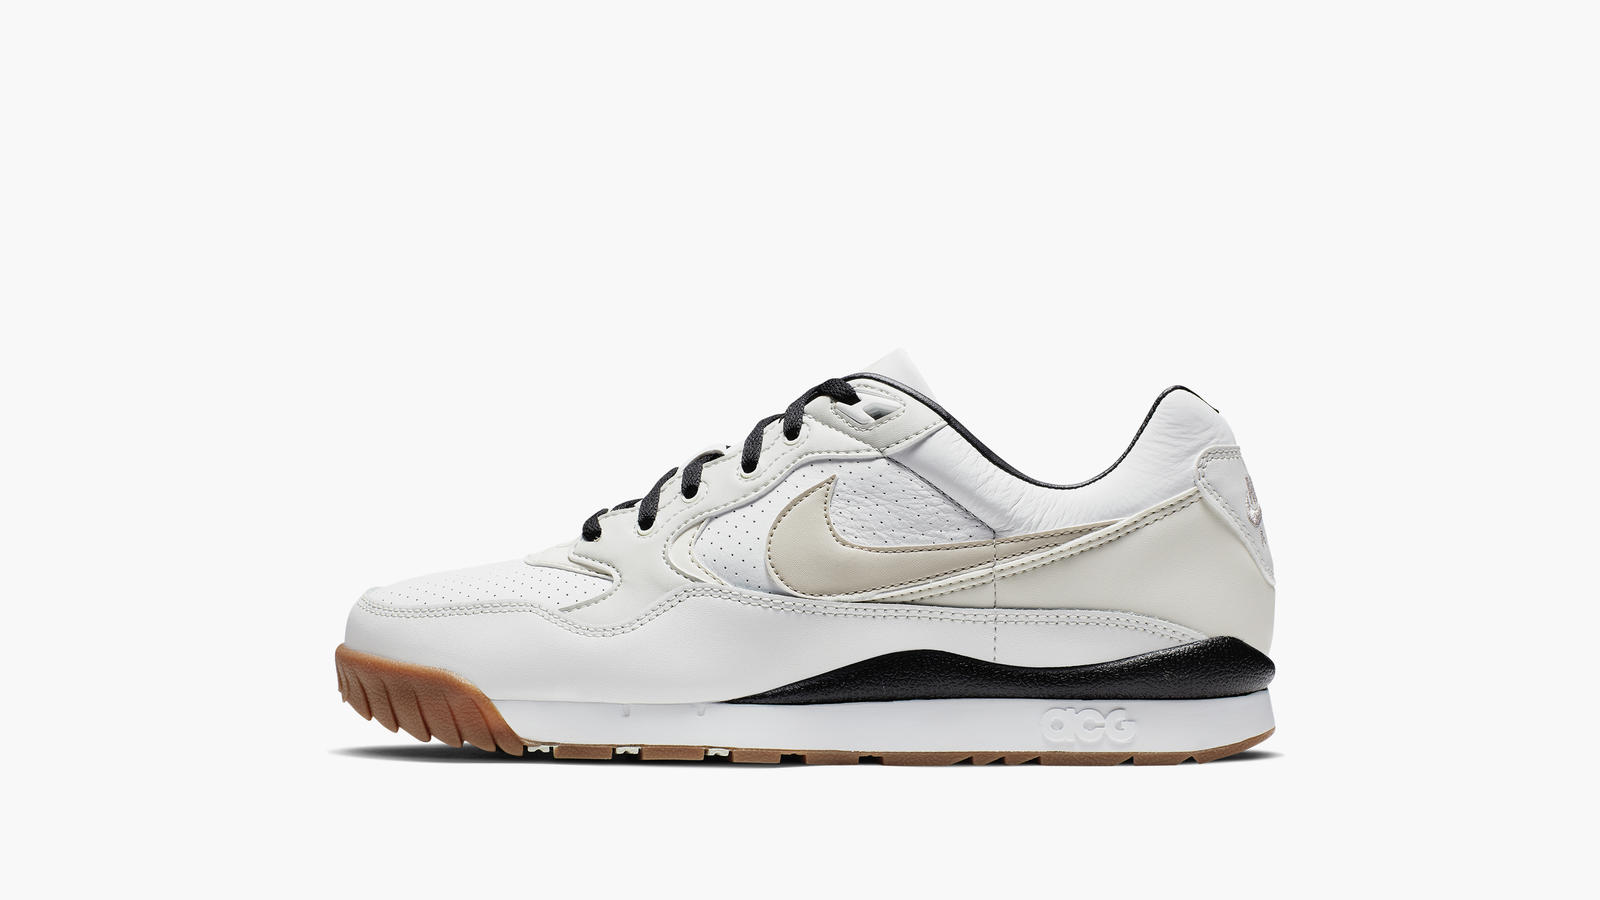 Nike Air Wildwood ACG Official Images and Release Info 5